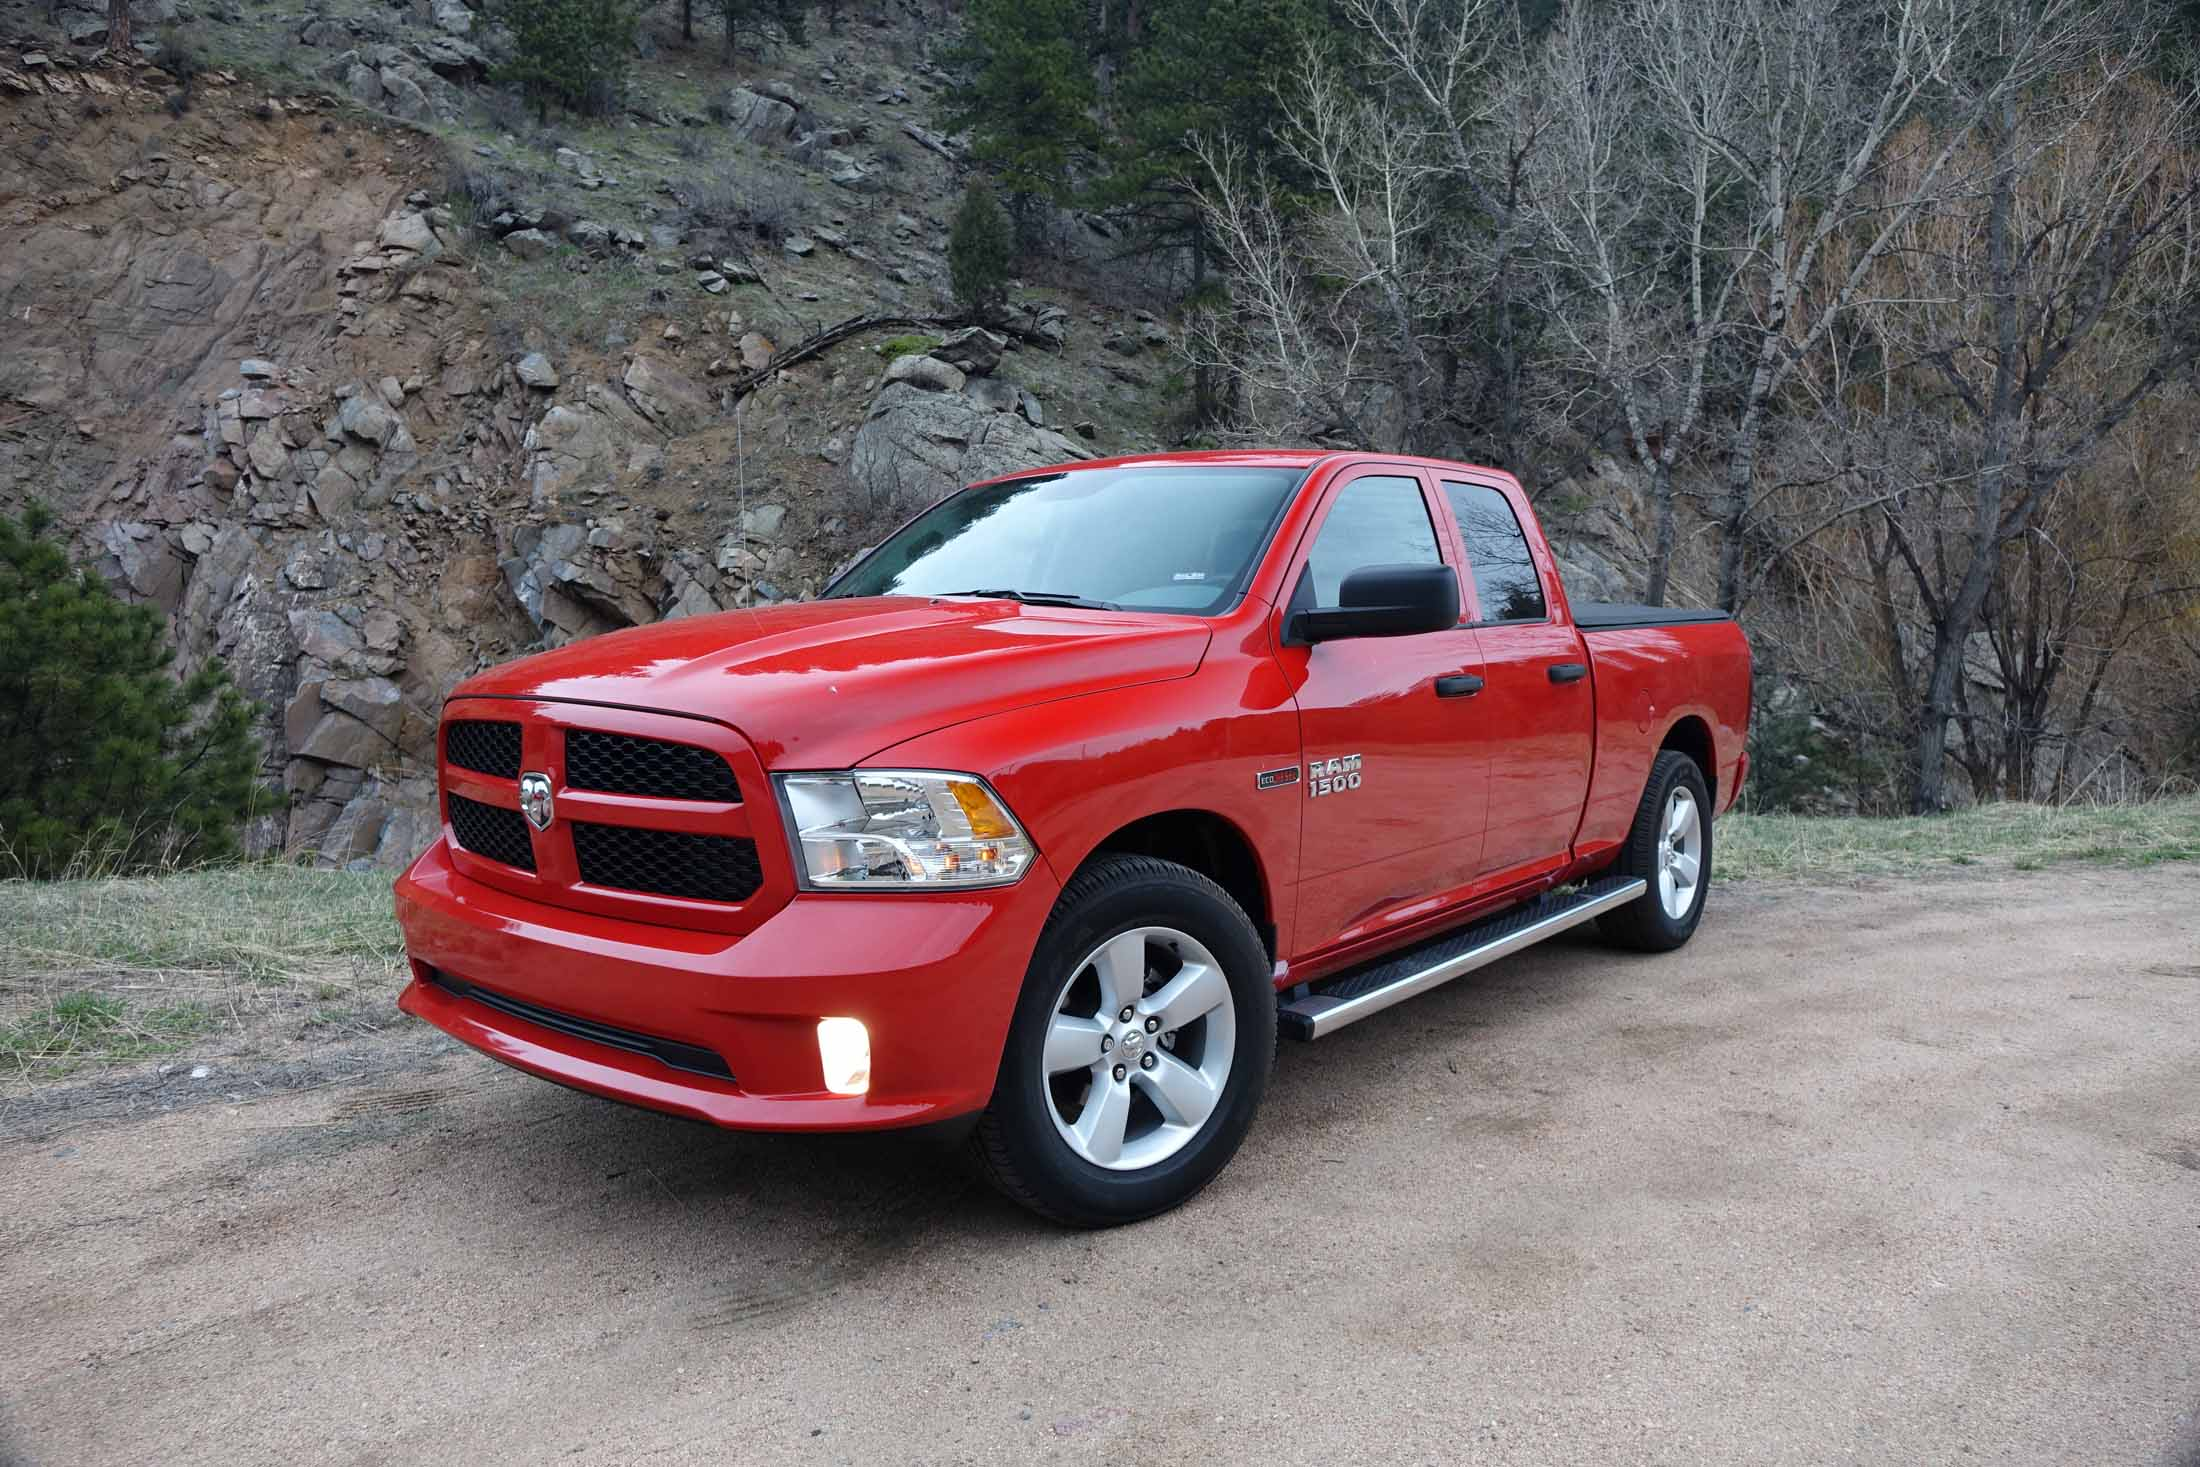 2016 ram 1500 hfe ecodiesel fuel economy review 24 mpg full size pickup truck. Black Bedroom Furniture Sets. Home Design Ideas